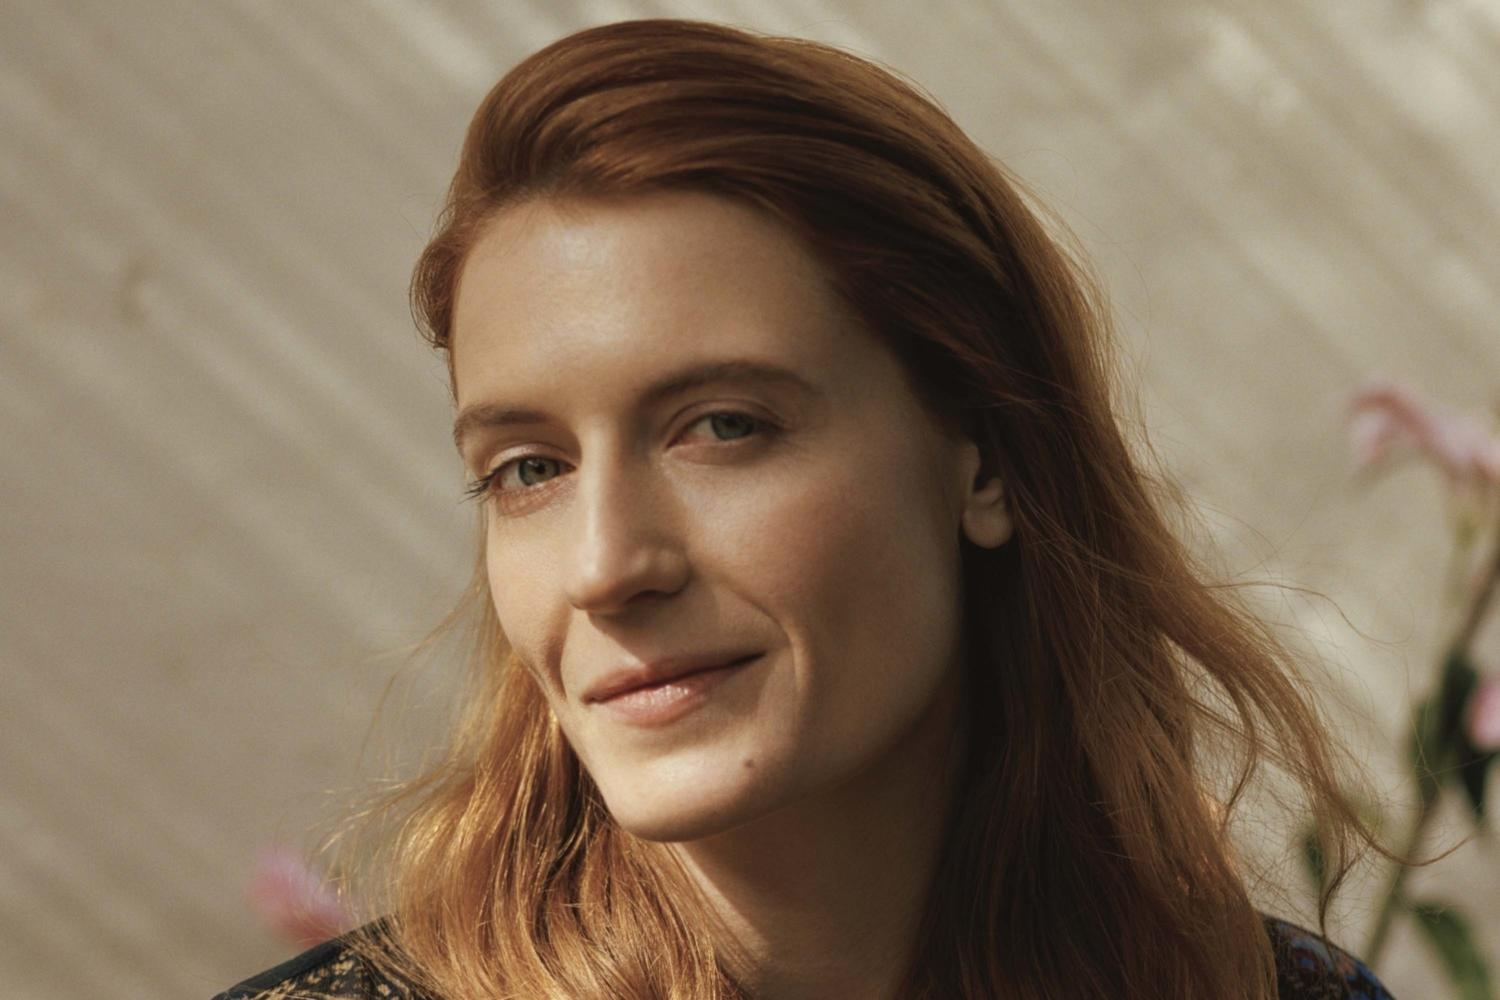 Listen to Florence + The Machine's track recorded for Game of Thrones